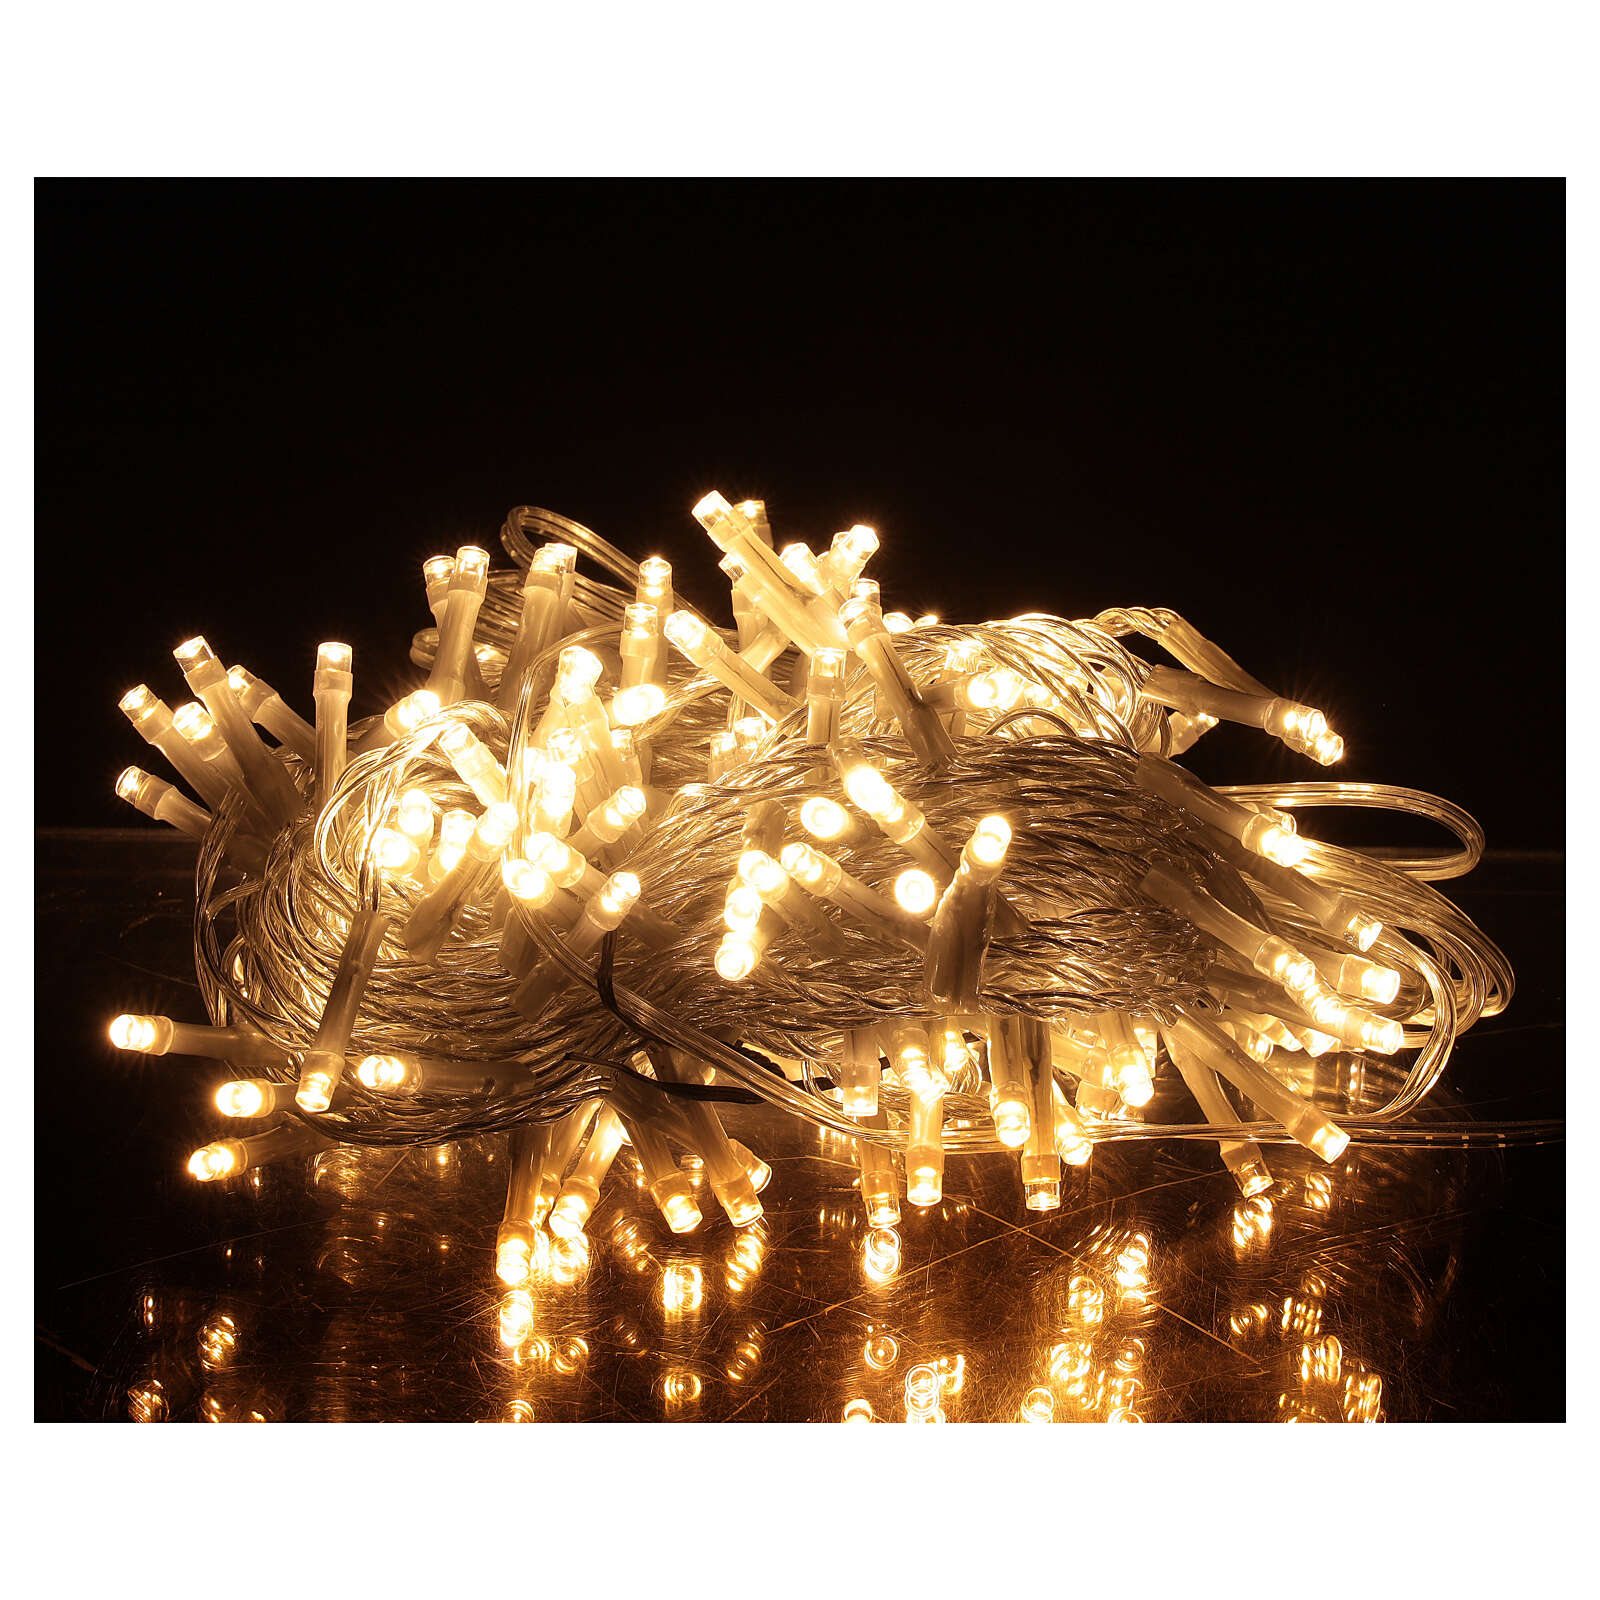 Christmas lights 180 warm white LEDS with light shows timer indoor outdoor 3